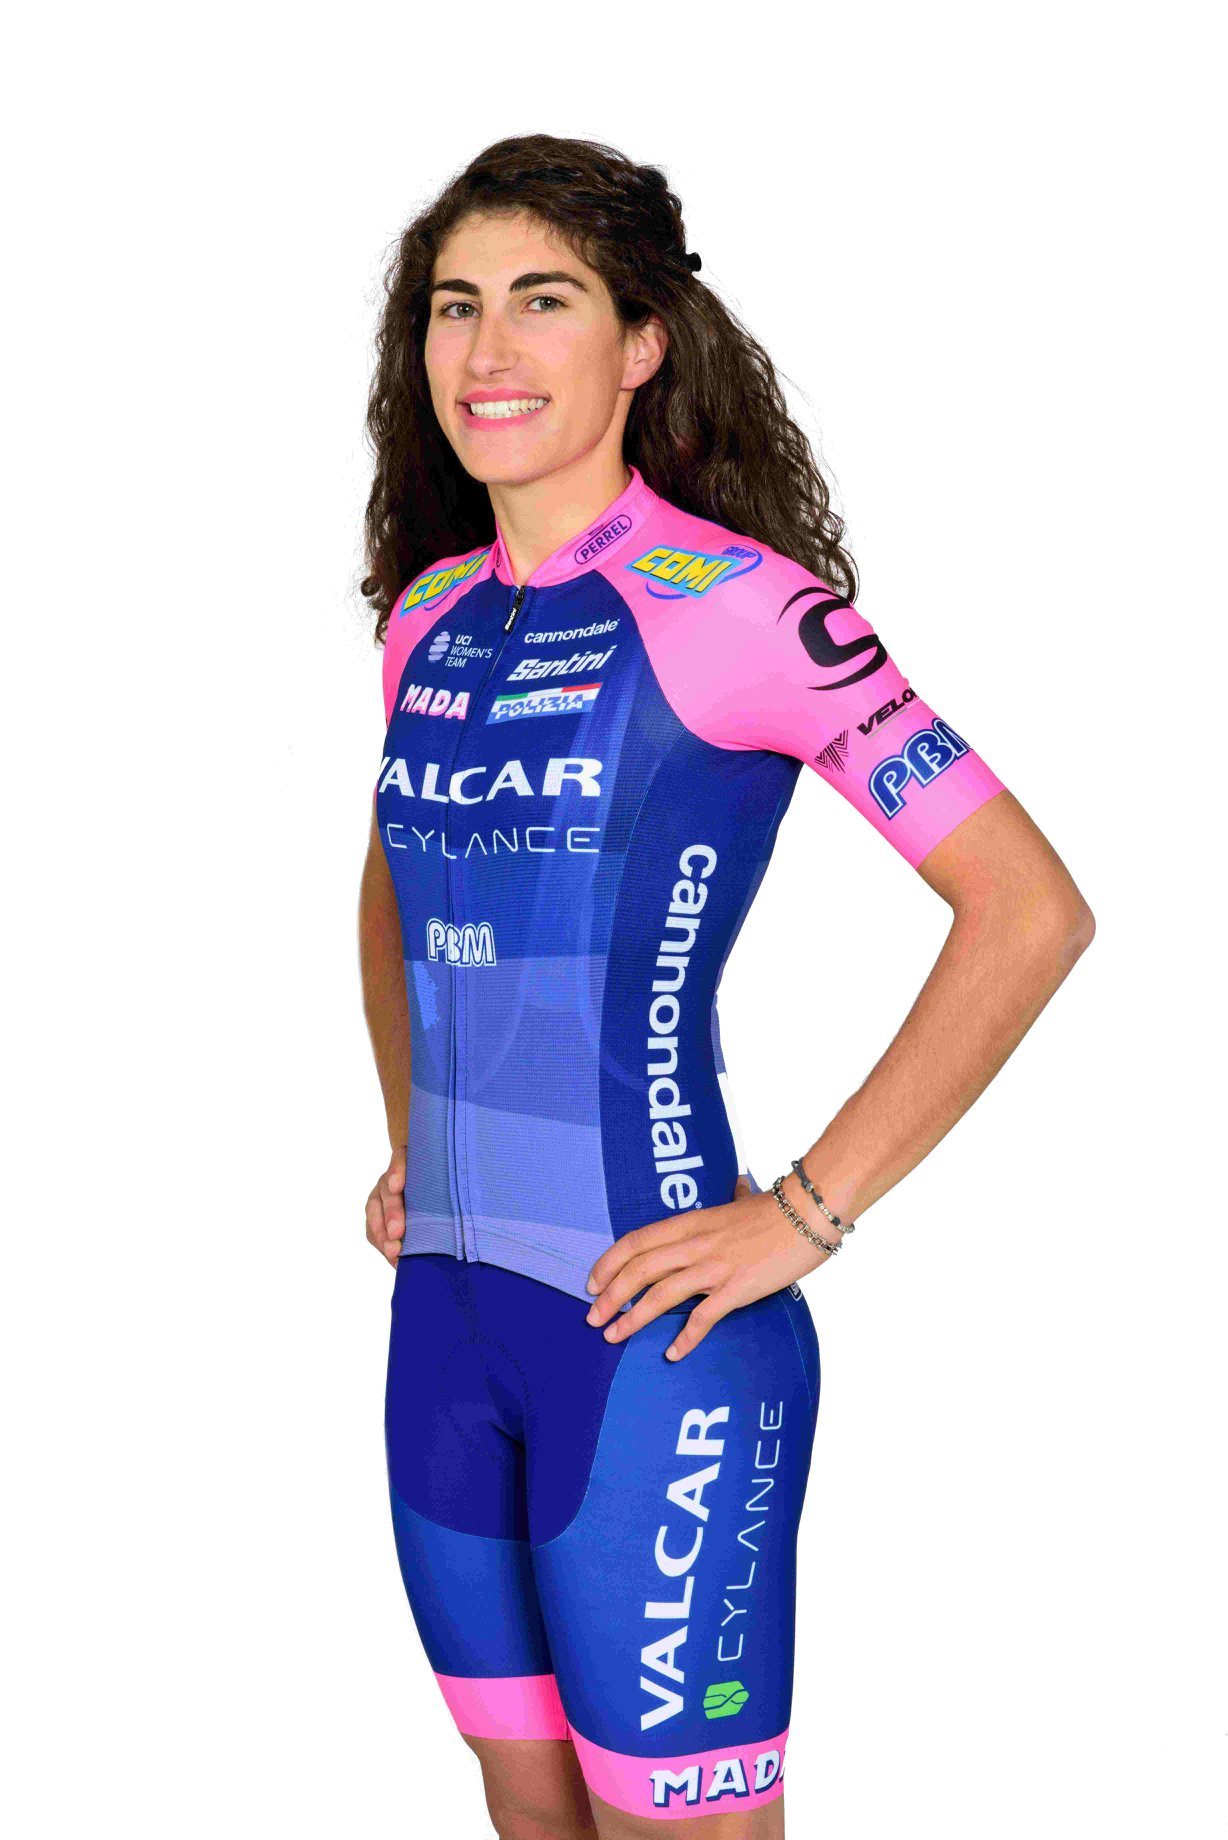 elisa balsamo of valcar-cylance cycling team